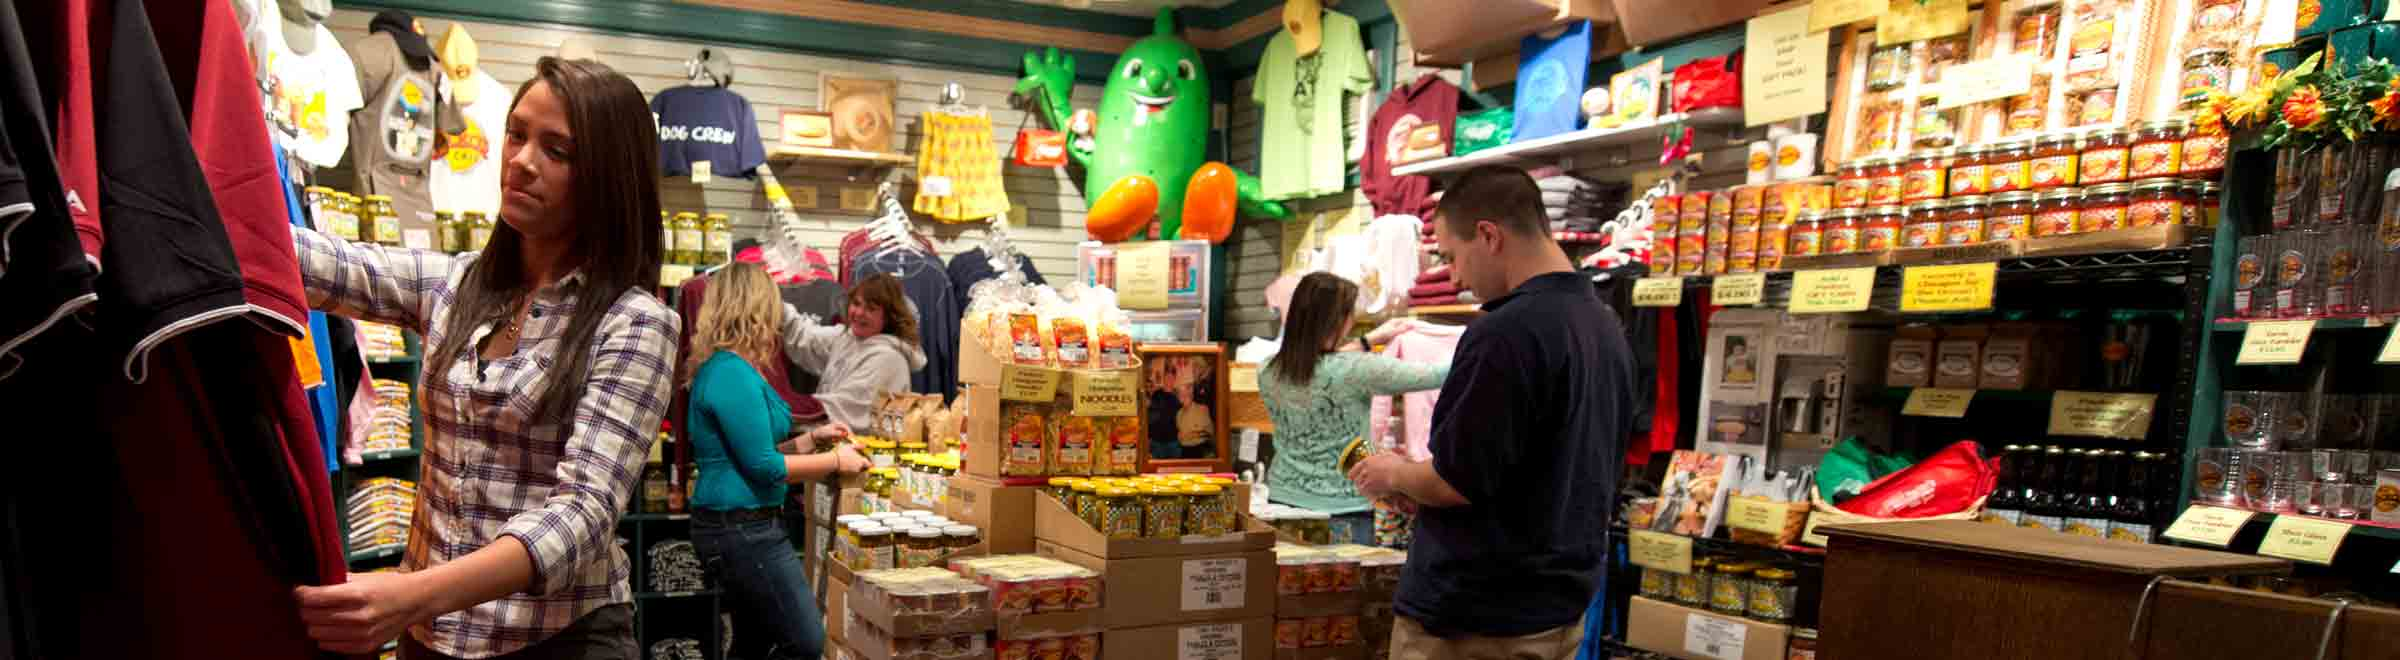 Five people browsing Tony Packo's physical gift shop; looking at tshirts, pickles, peppers and other Packo merchandise